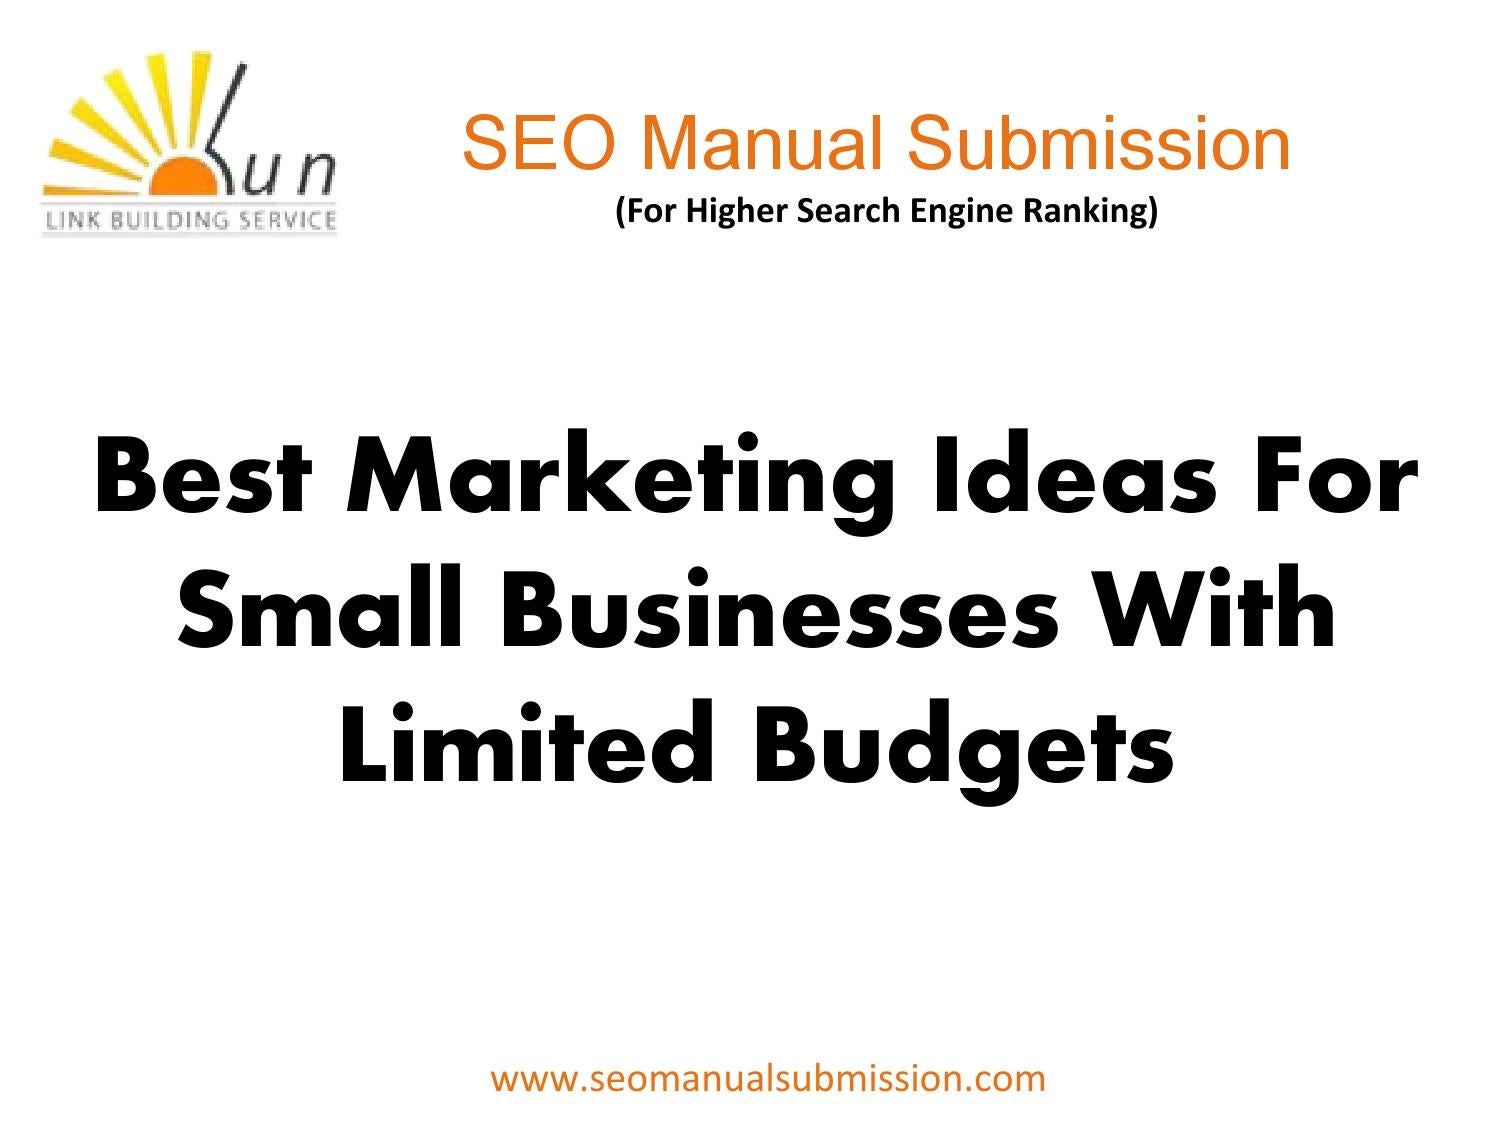 Best Marketing Ideas For Small Businesses With Limited